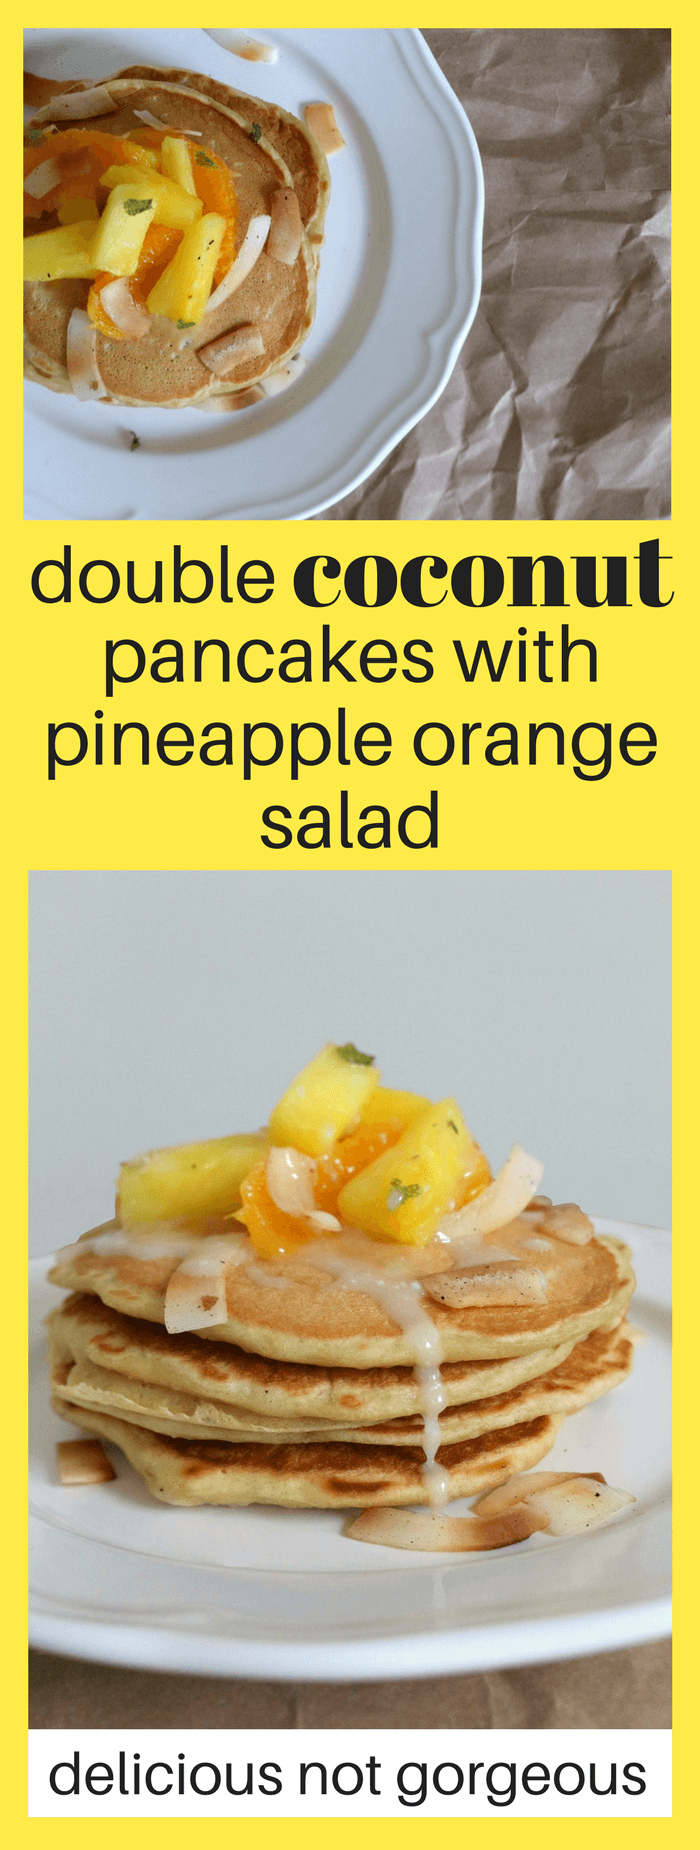 These double coconut pancakes with pineapple orange salad are perfect when you want a taste of the pina colada-scented tropics for brunch. #coconut #pancakes #pineapple #breakfast #brunch